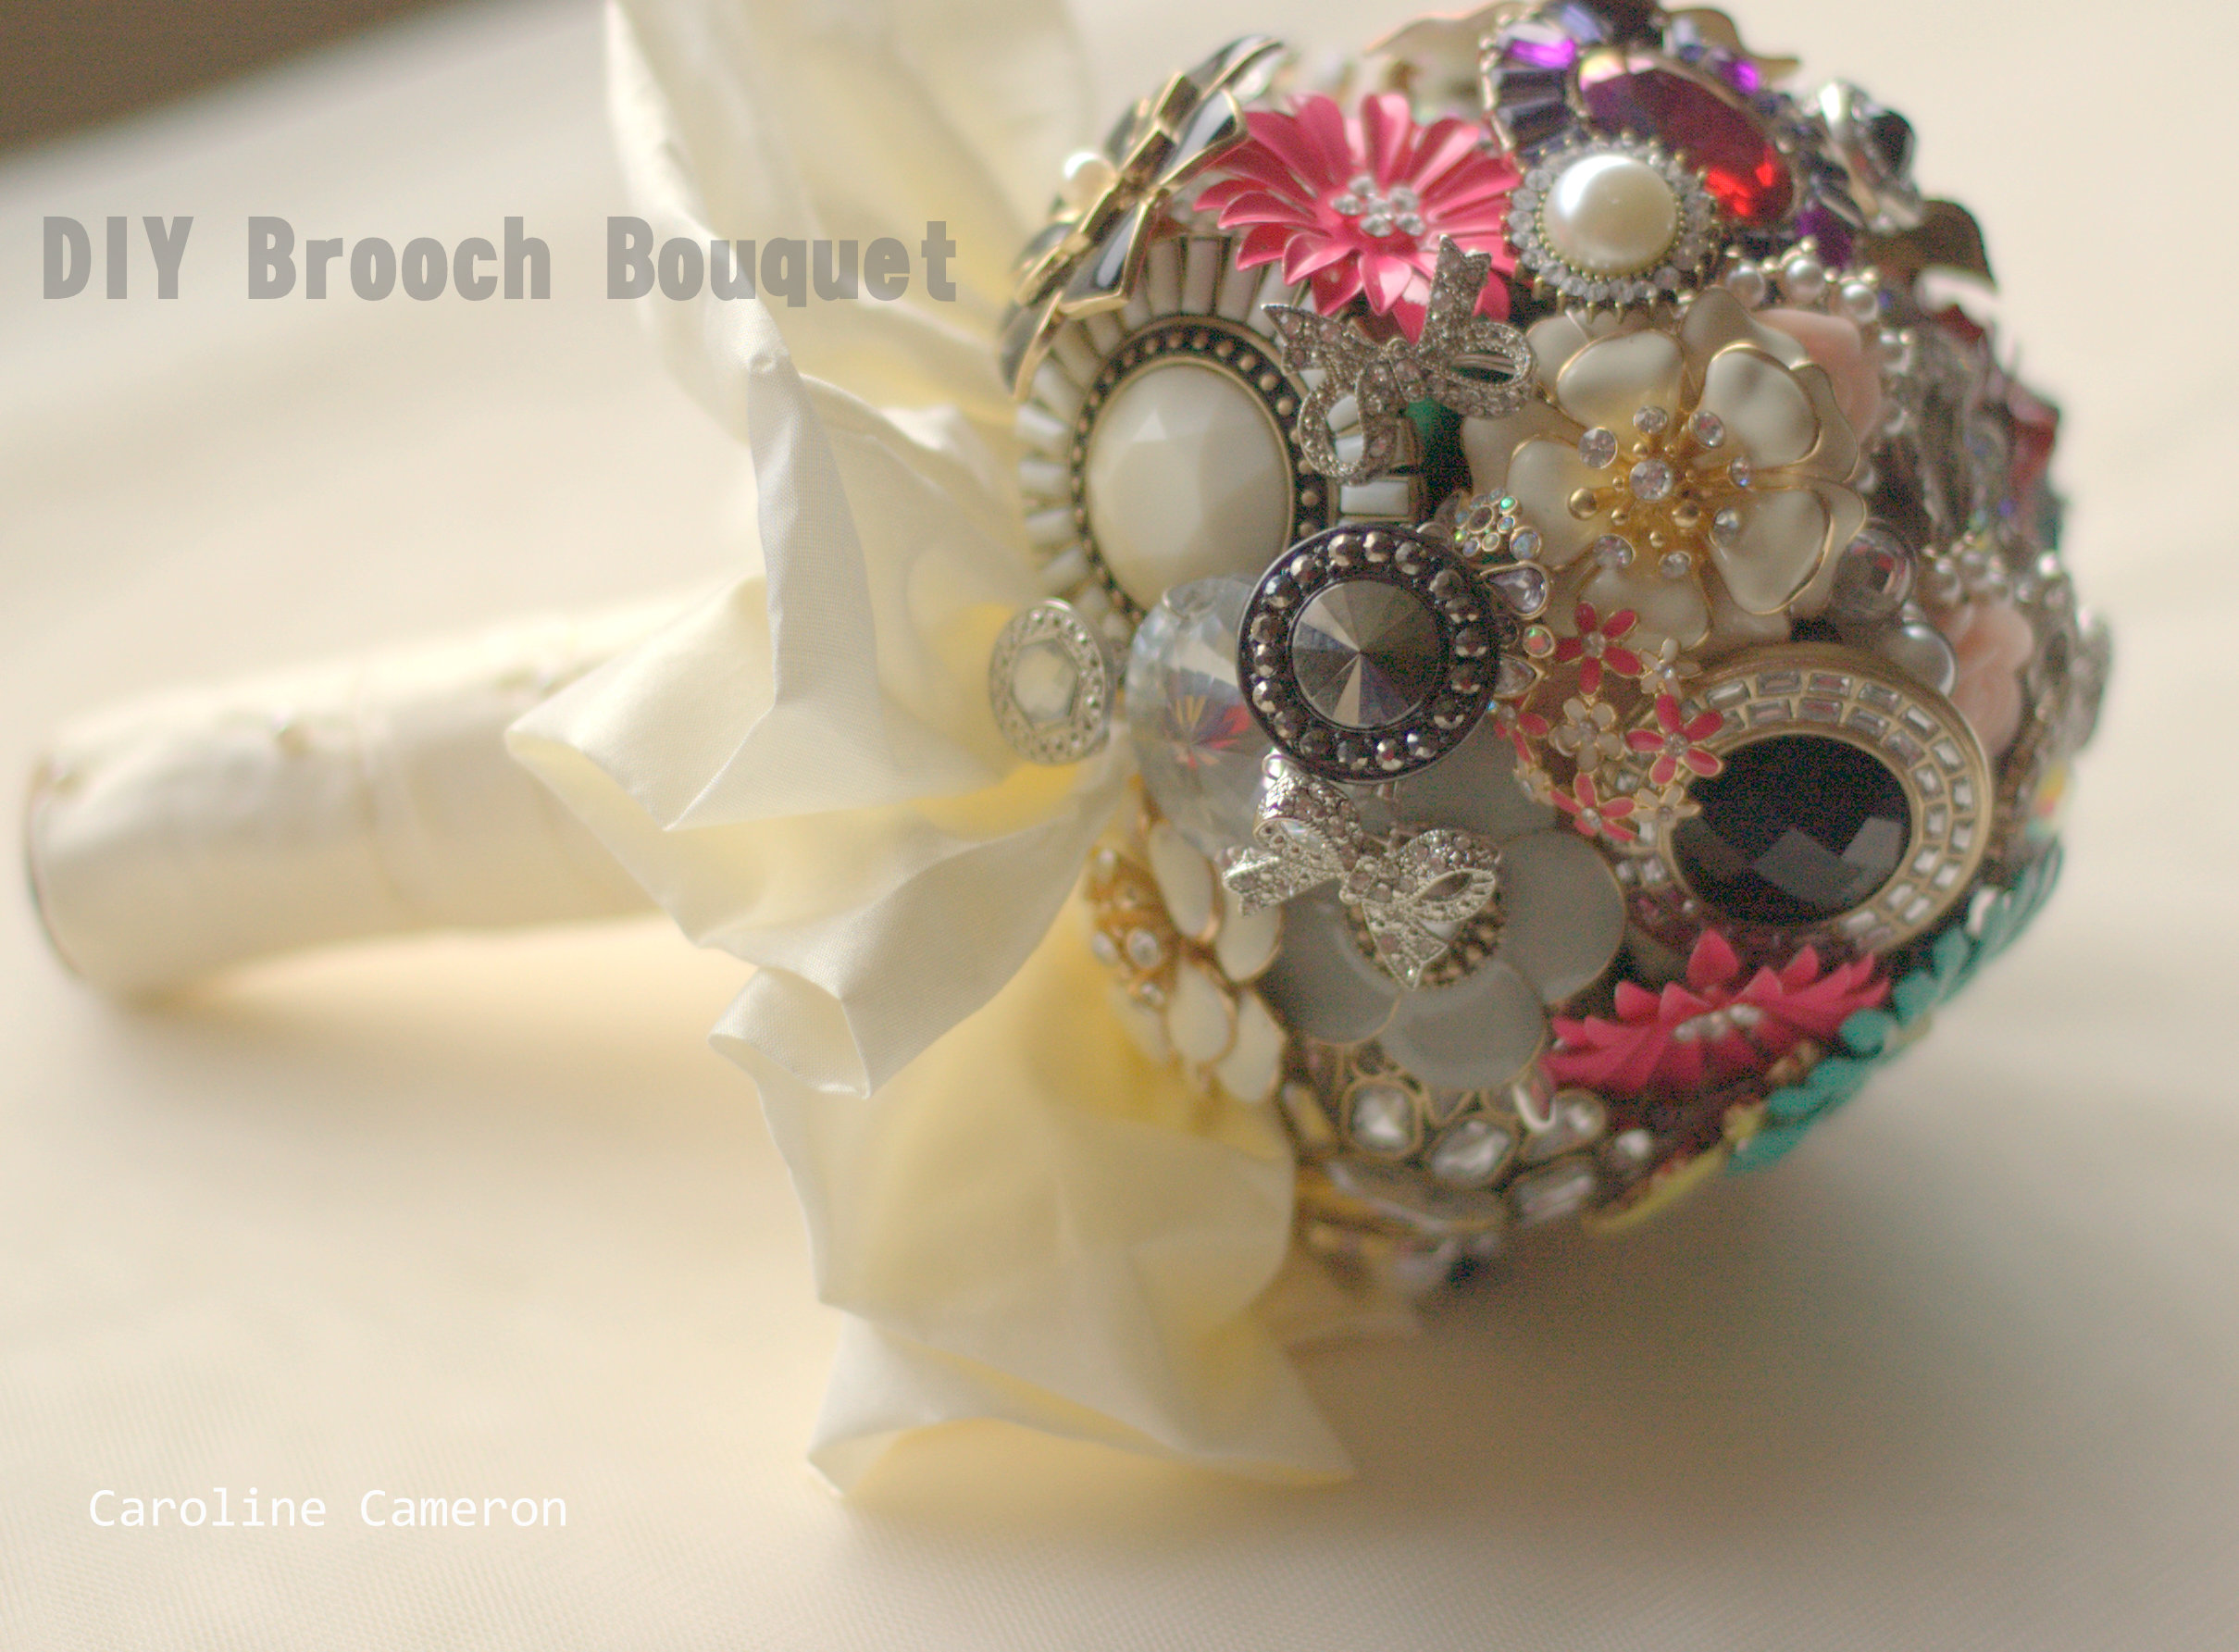 Diy Brooch Bouquets Tea Is The Answer